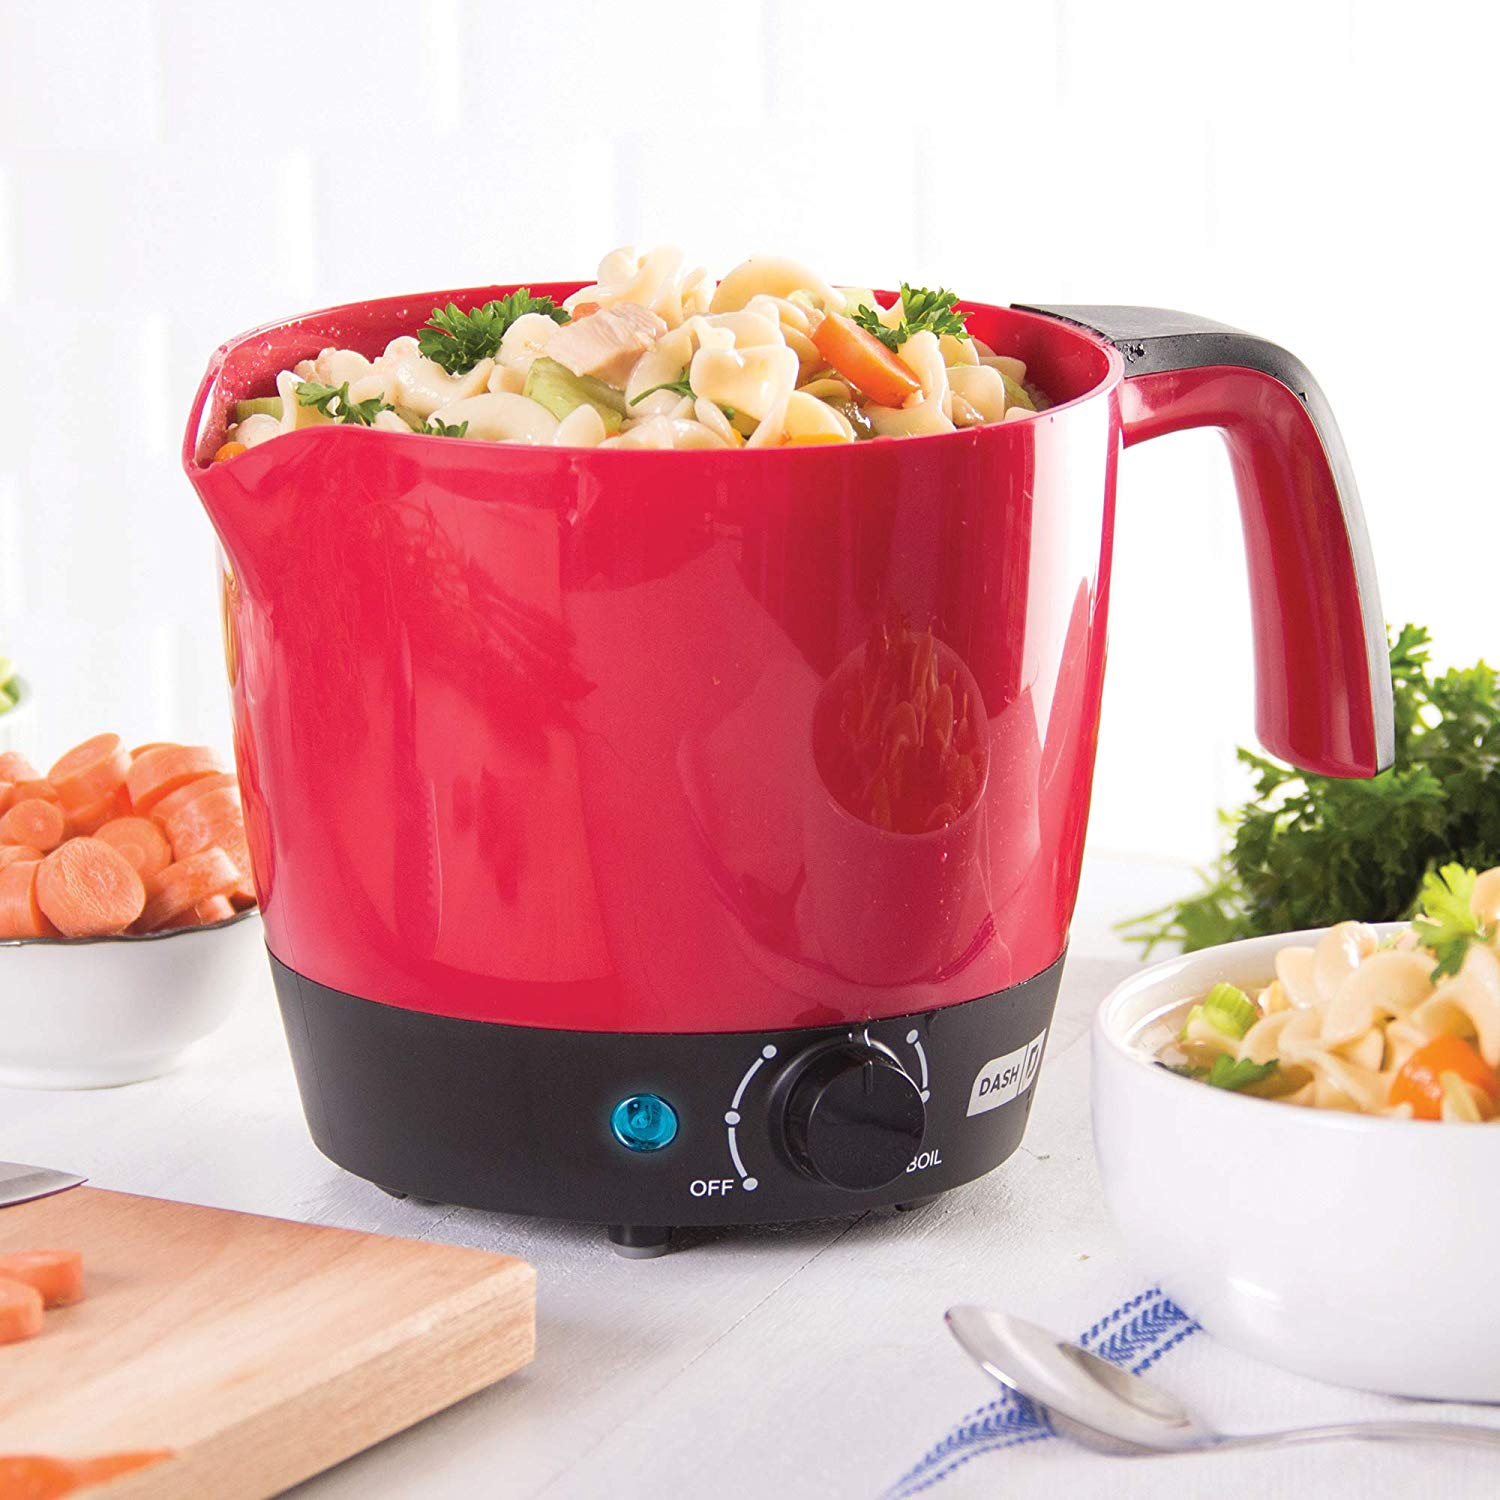 DASH DMC100RDDash Express Electric Cooker Hot Pot with Temperature Control for Noodles